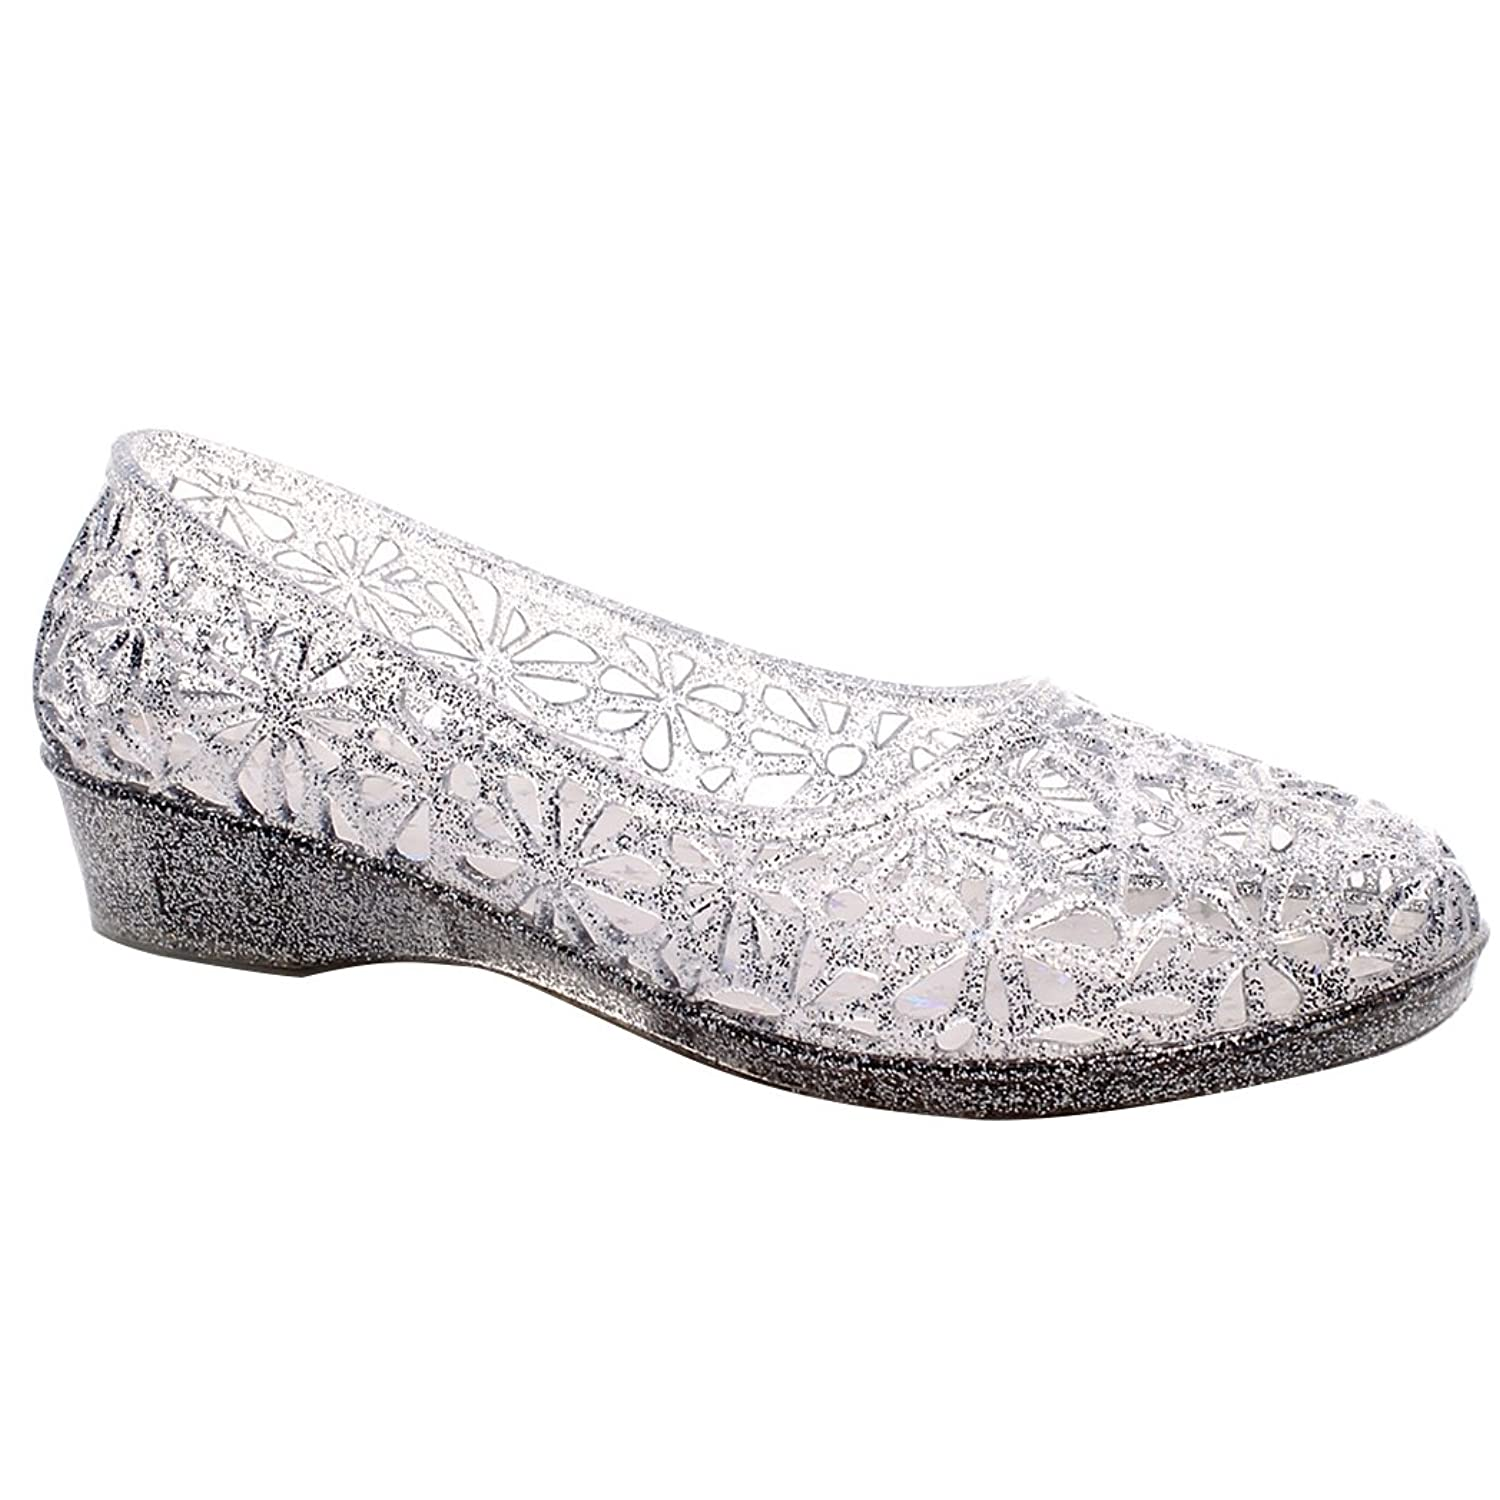 AlwaysU Womens Ladies Sandals Slip on Crystal Ballet Flat Hollow Glitter Jelly Shoes Size